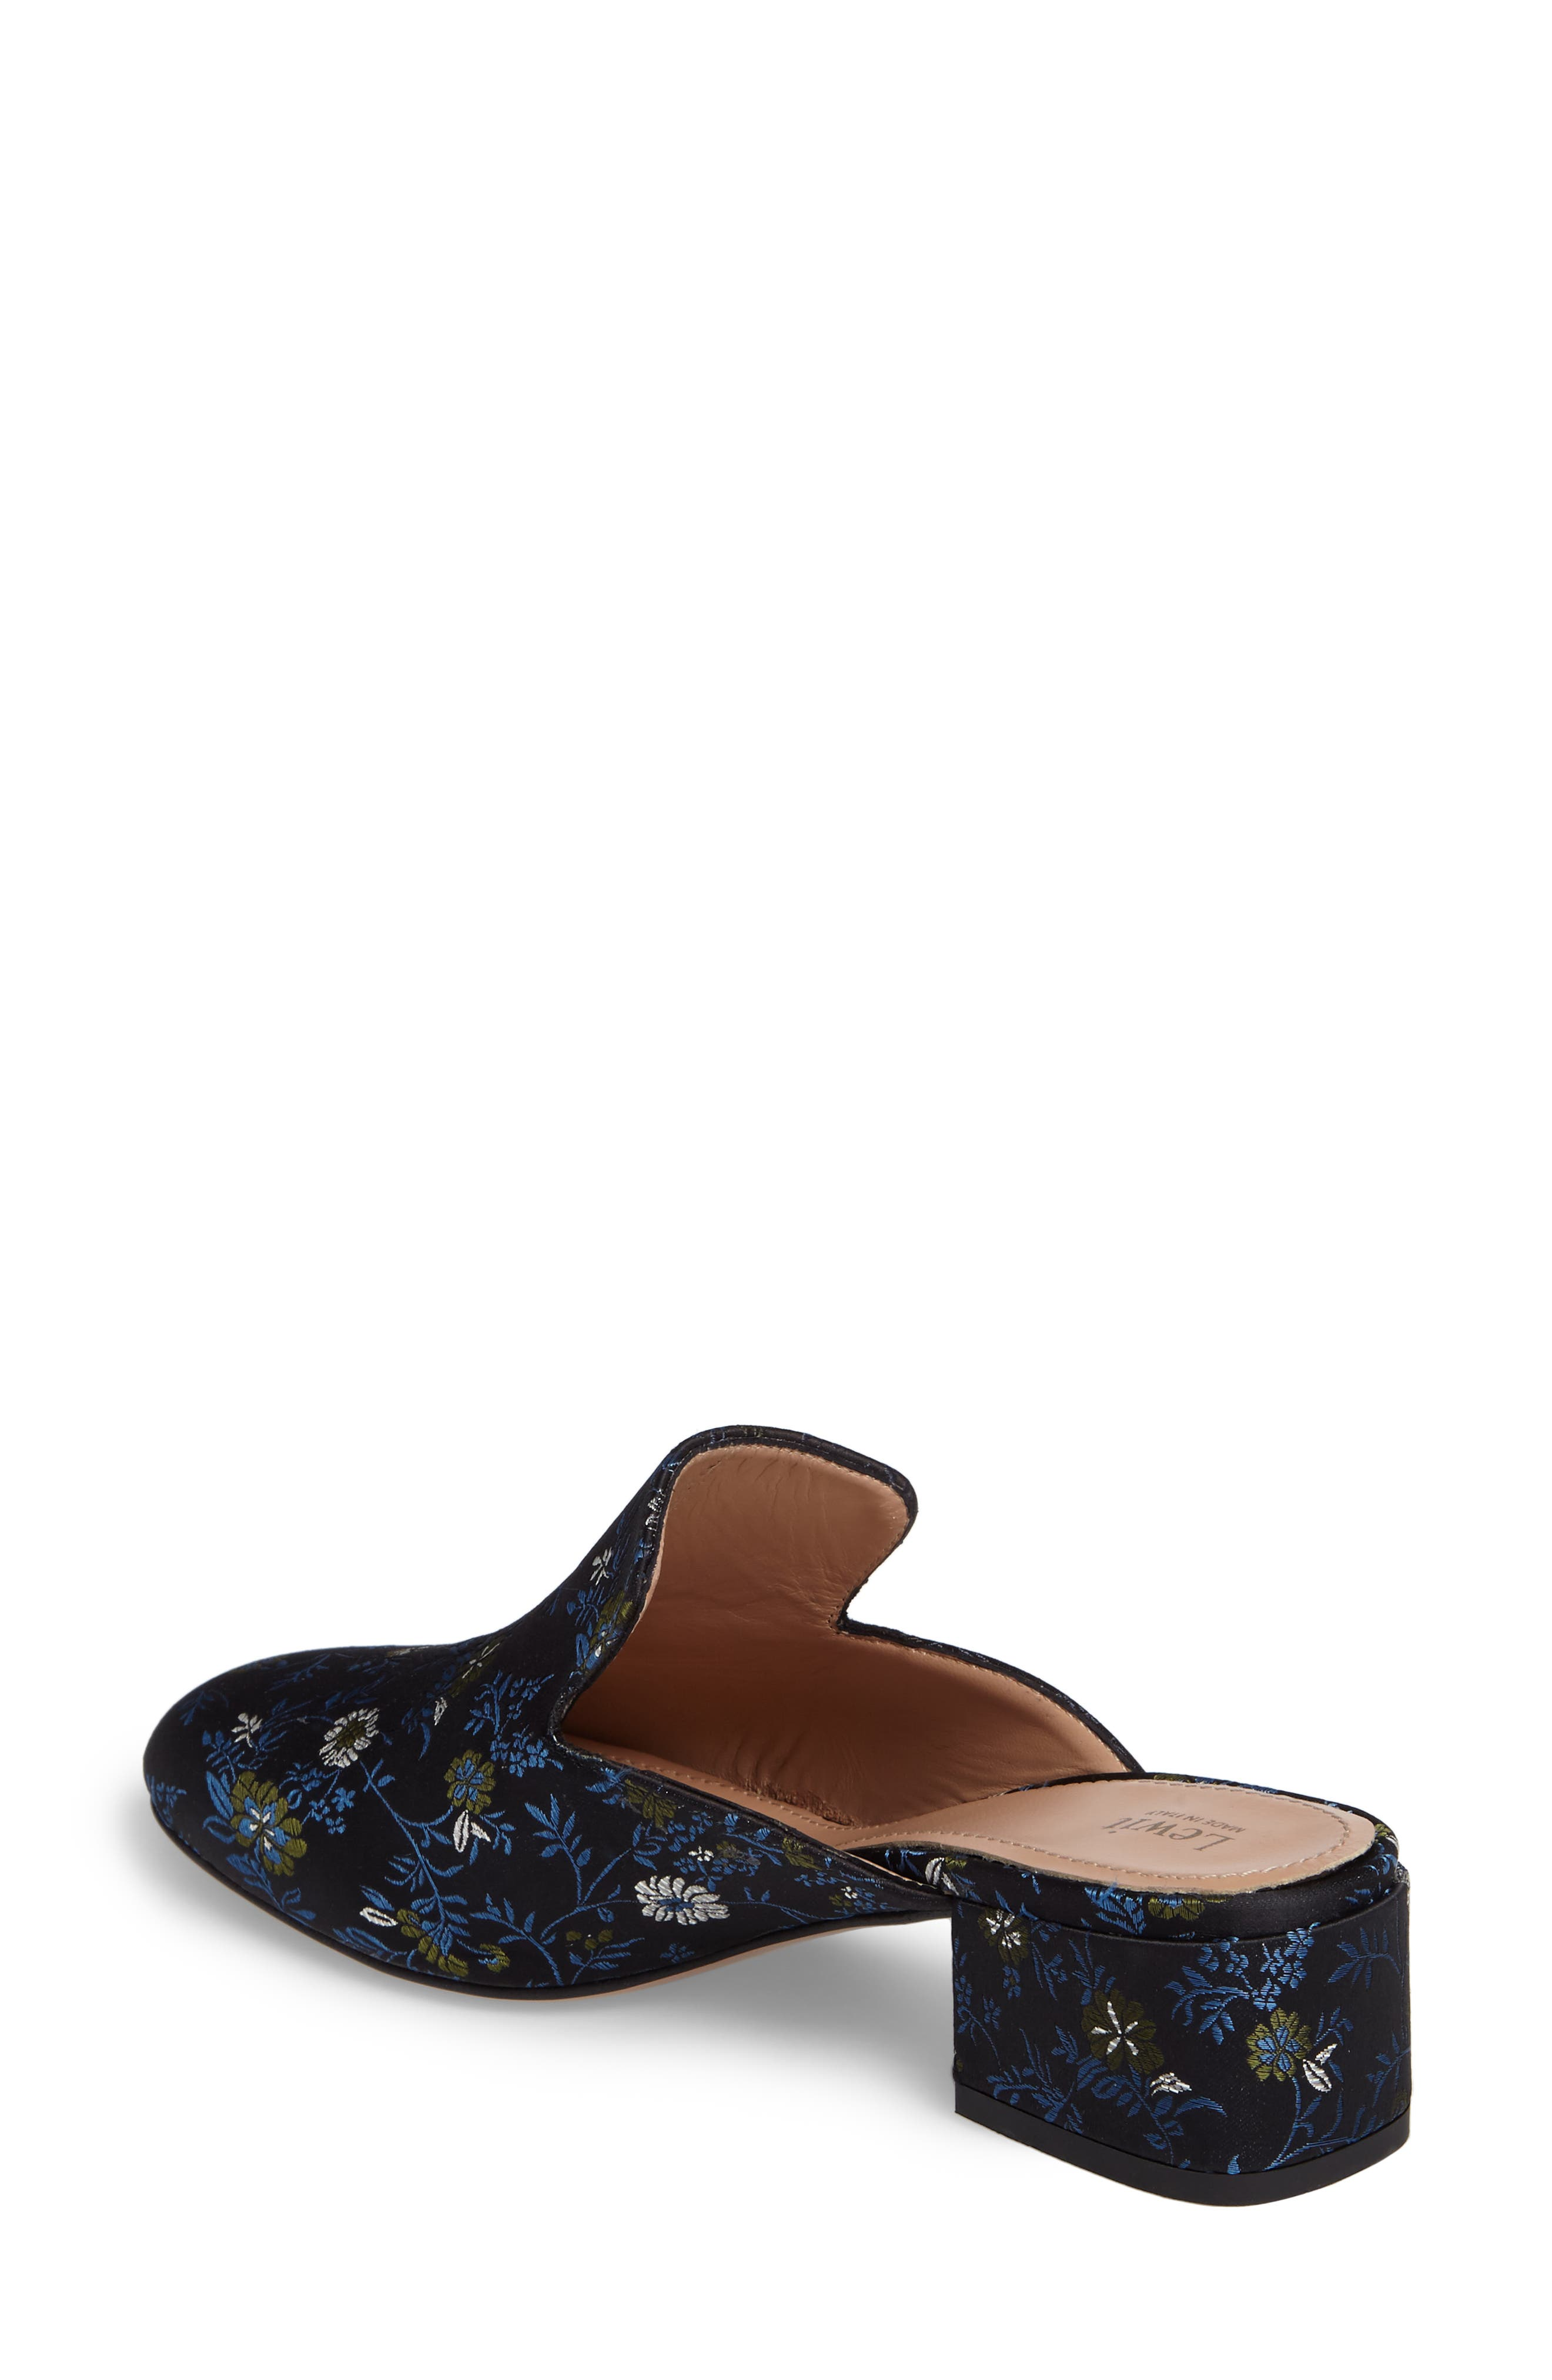 Bianca Embroidered Loafer Mule,                             Alternate thumbnail 2, color,                             005